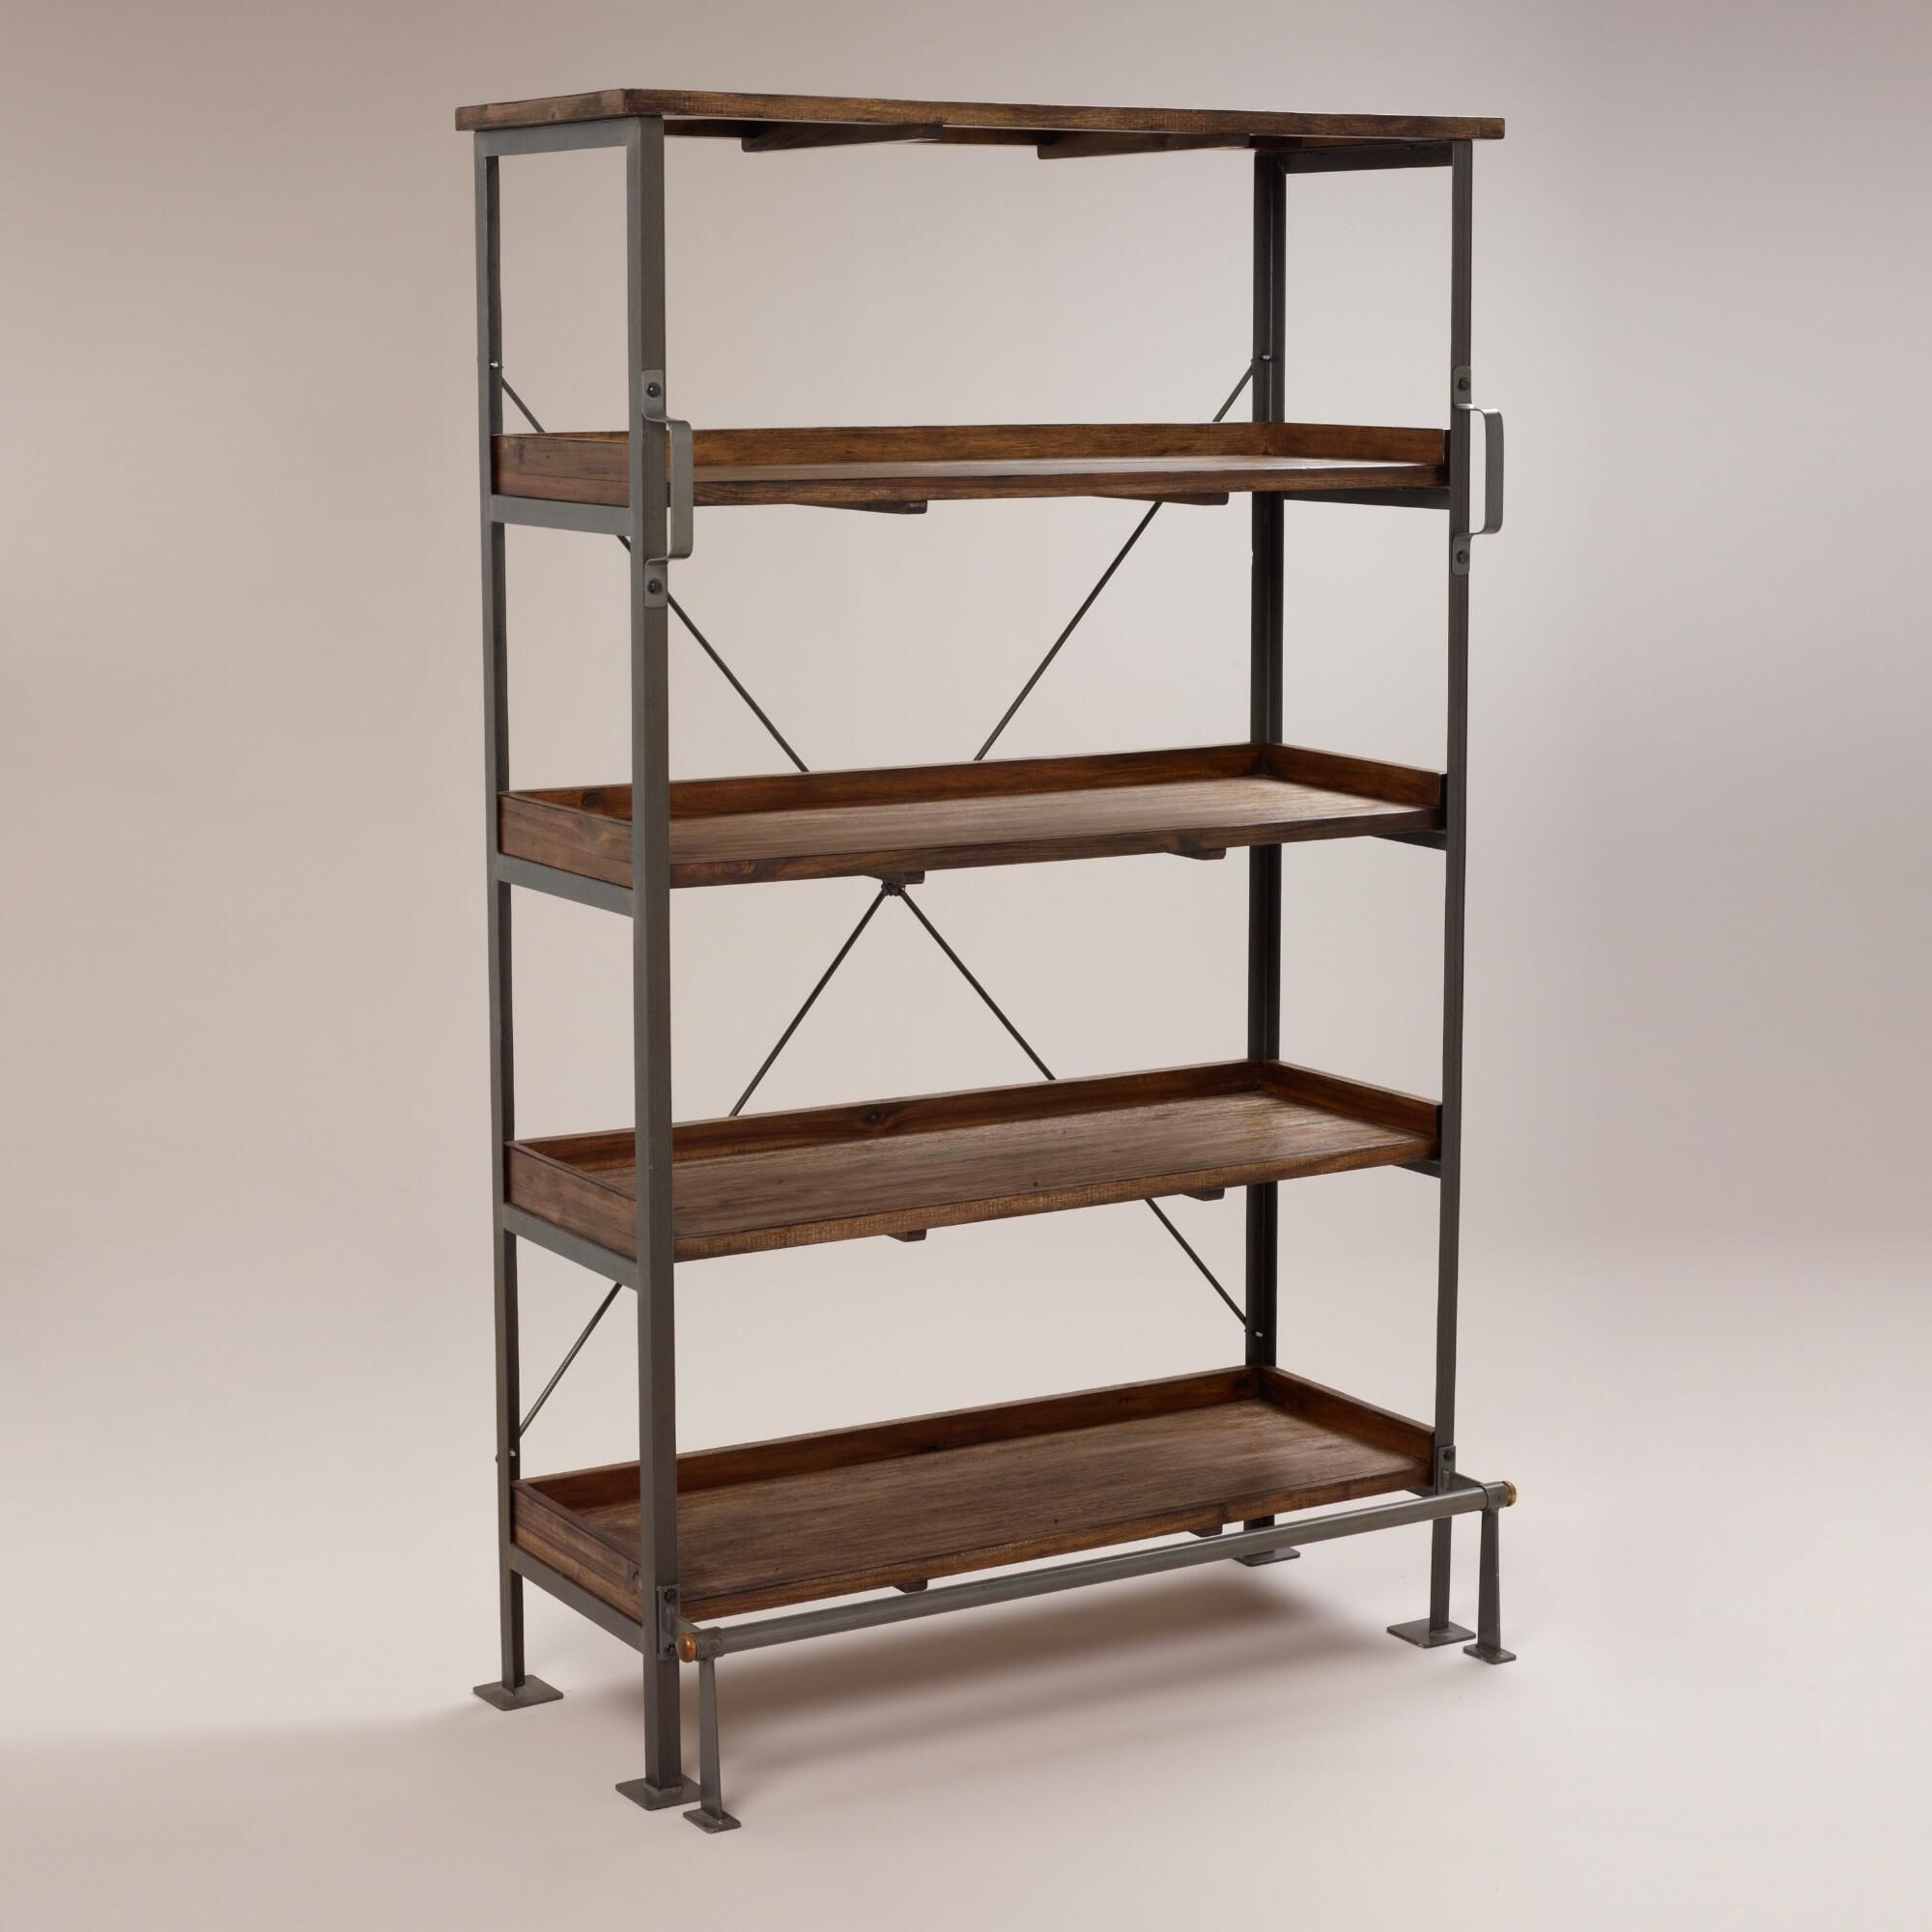 Emerson Shelving Shelves Home Office Furniture Rustic Bookcase